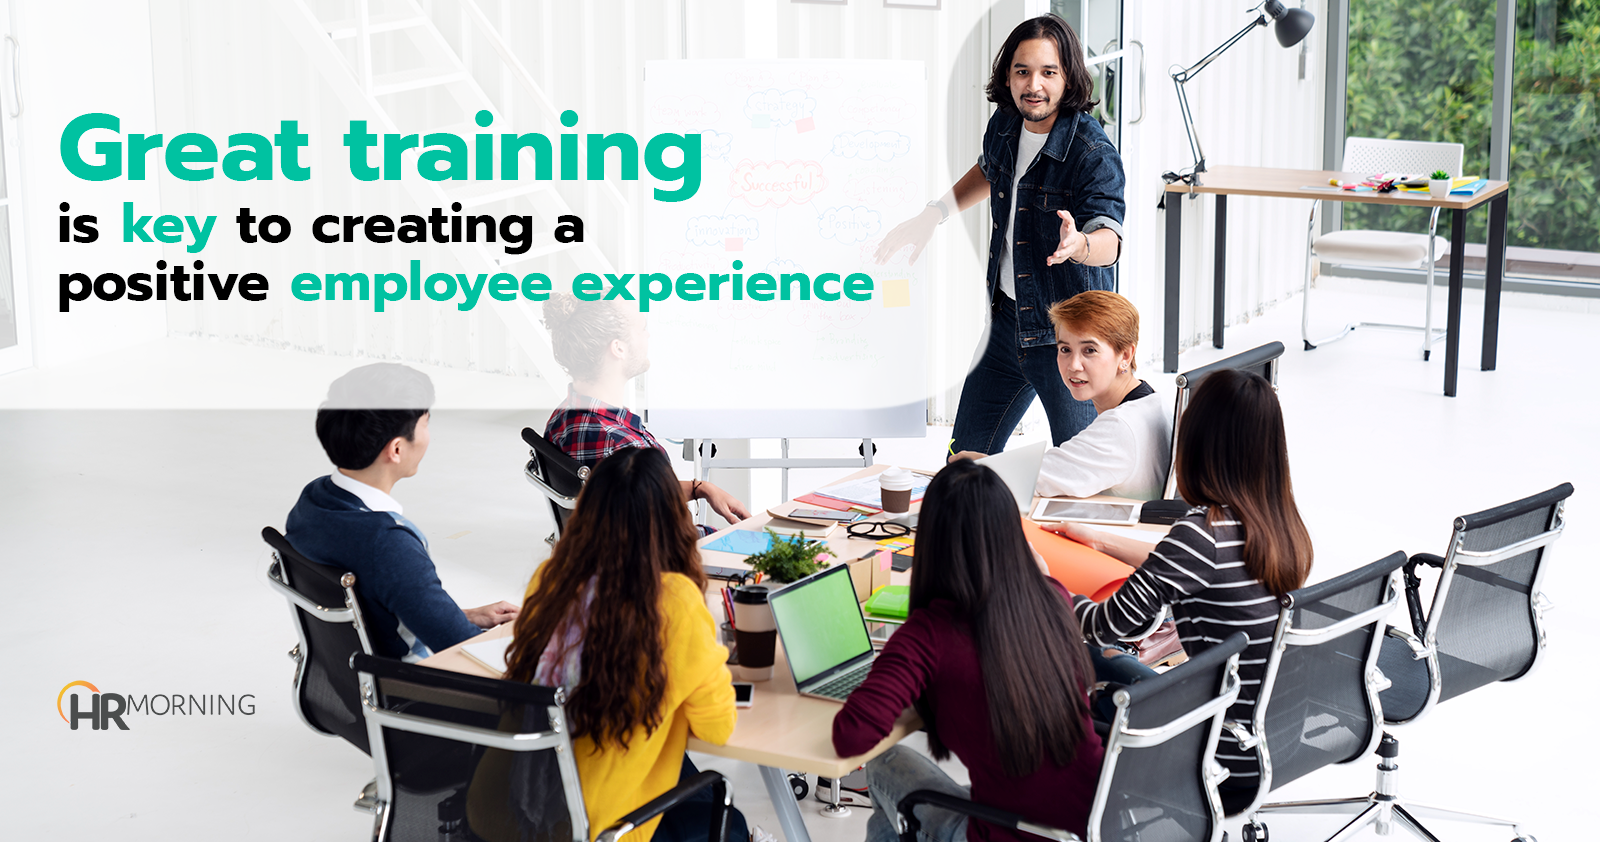 great training is key to creating a positive employee experience